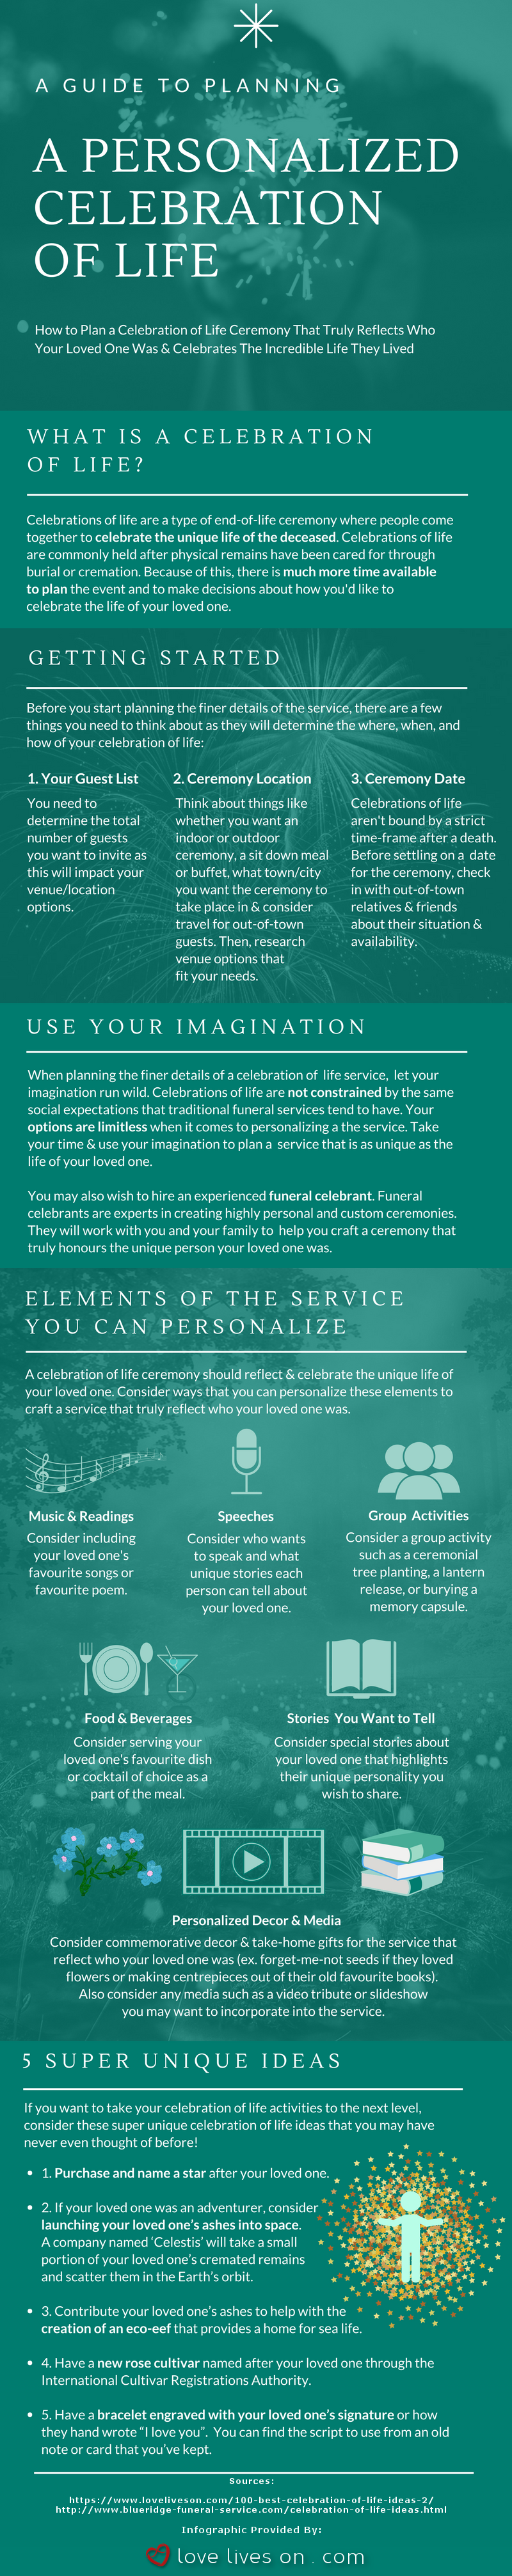 How to Plan a Celebration of Life [Infographic]